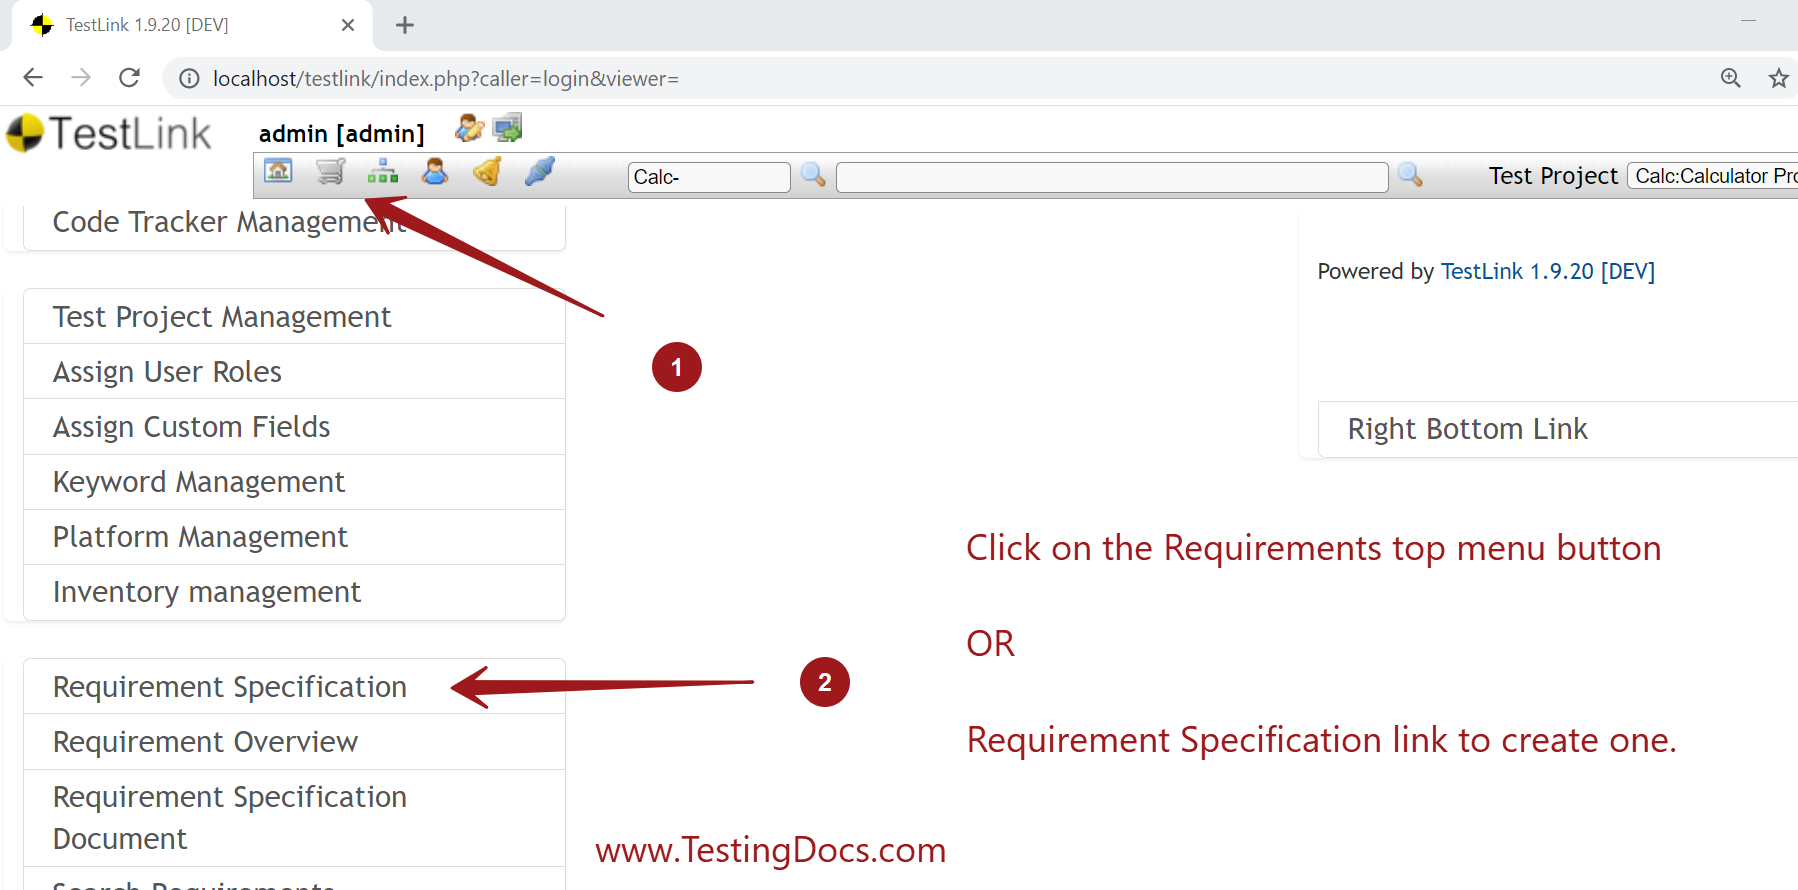 Requirement Specification